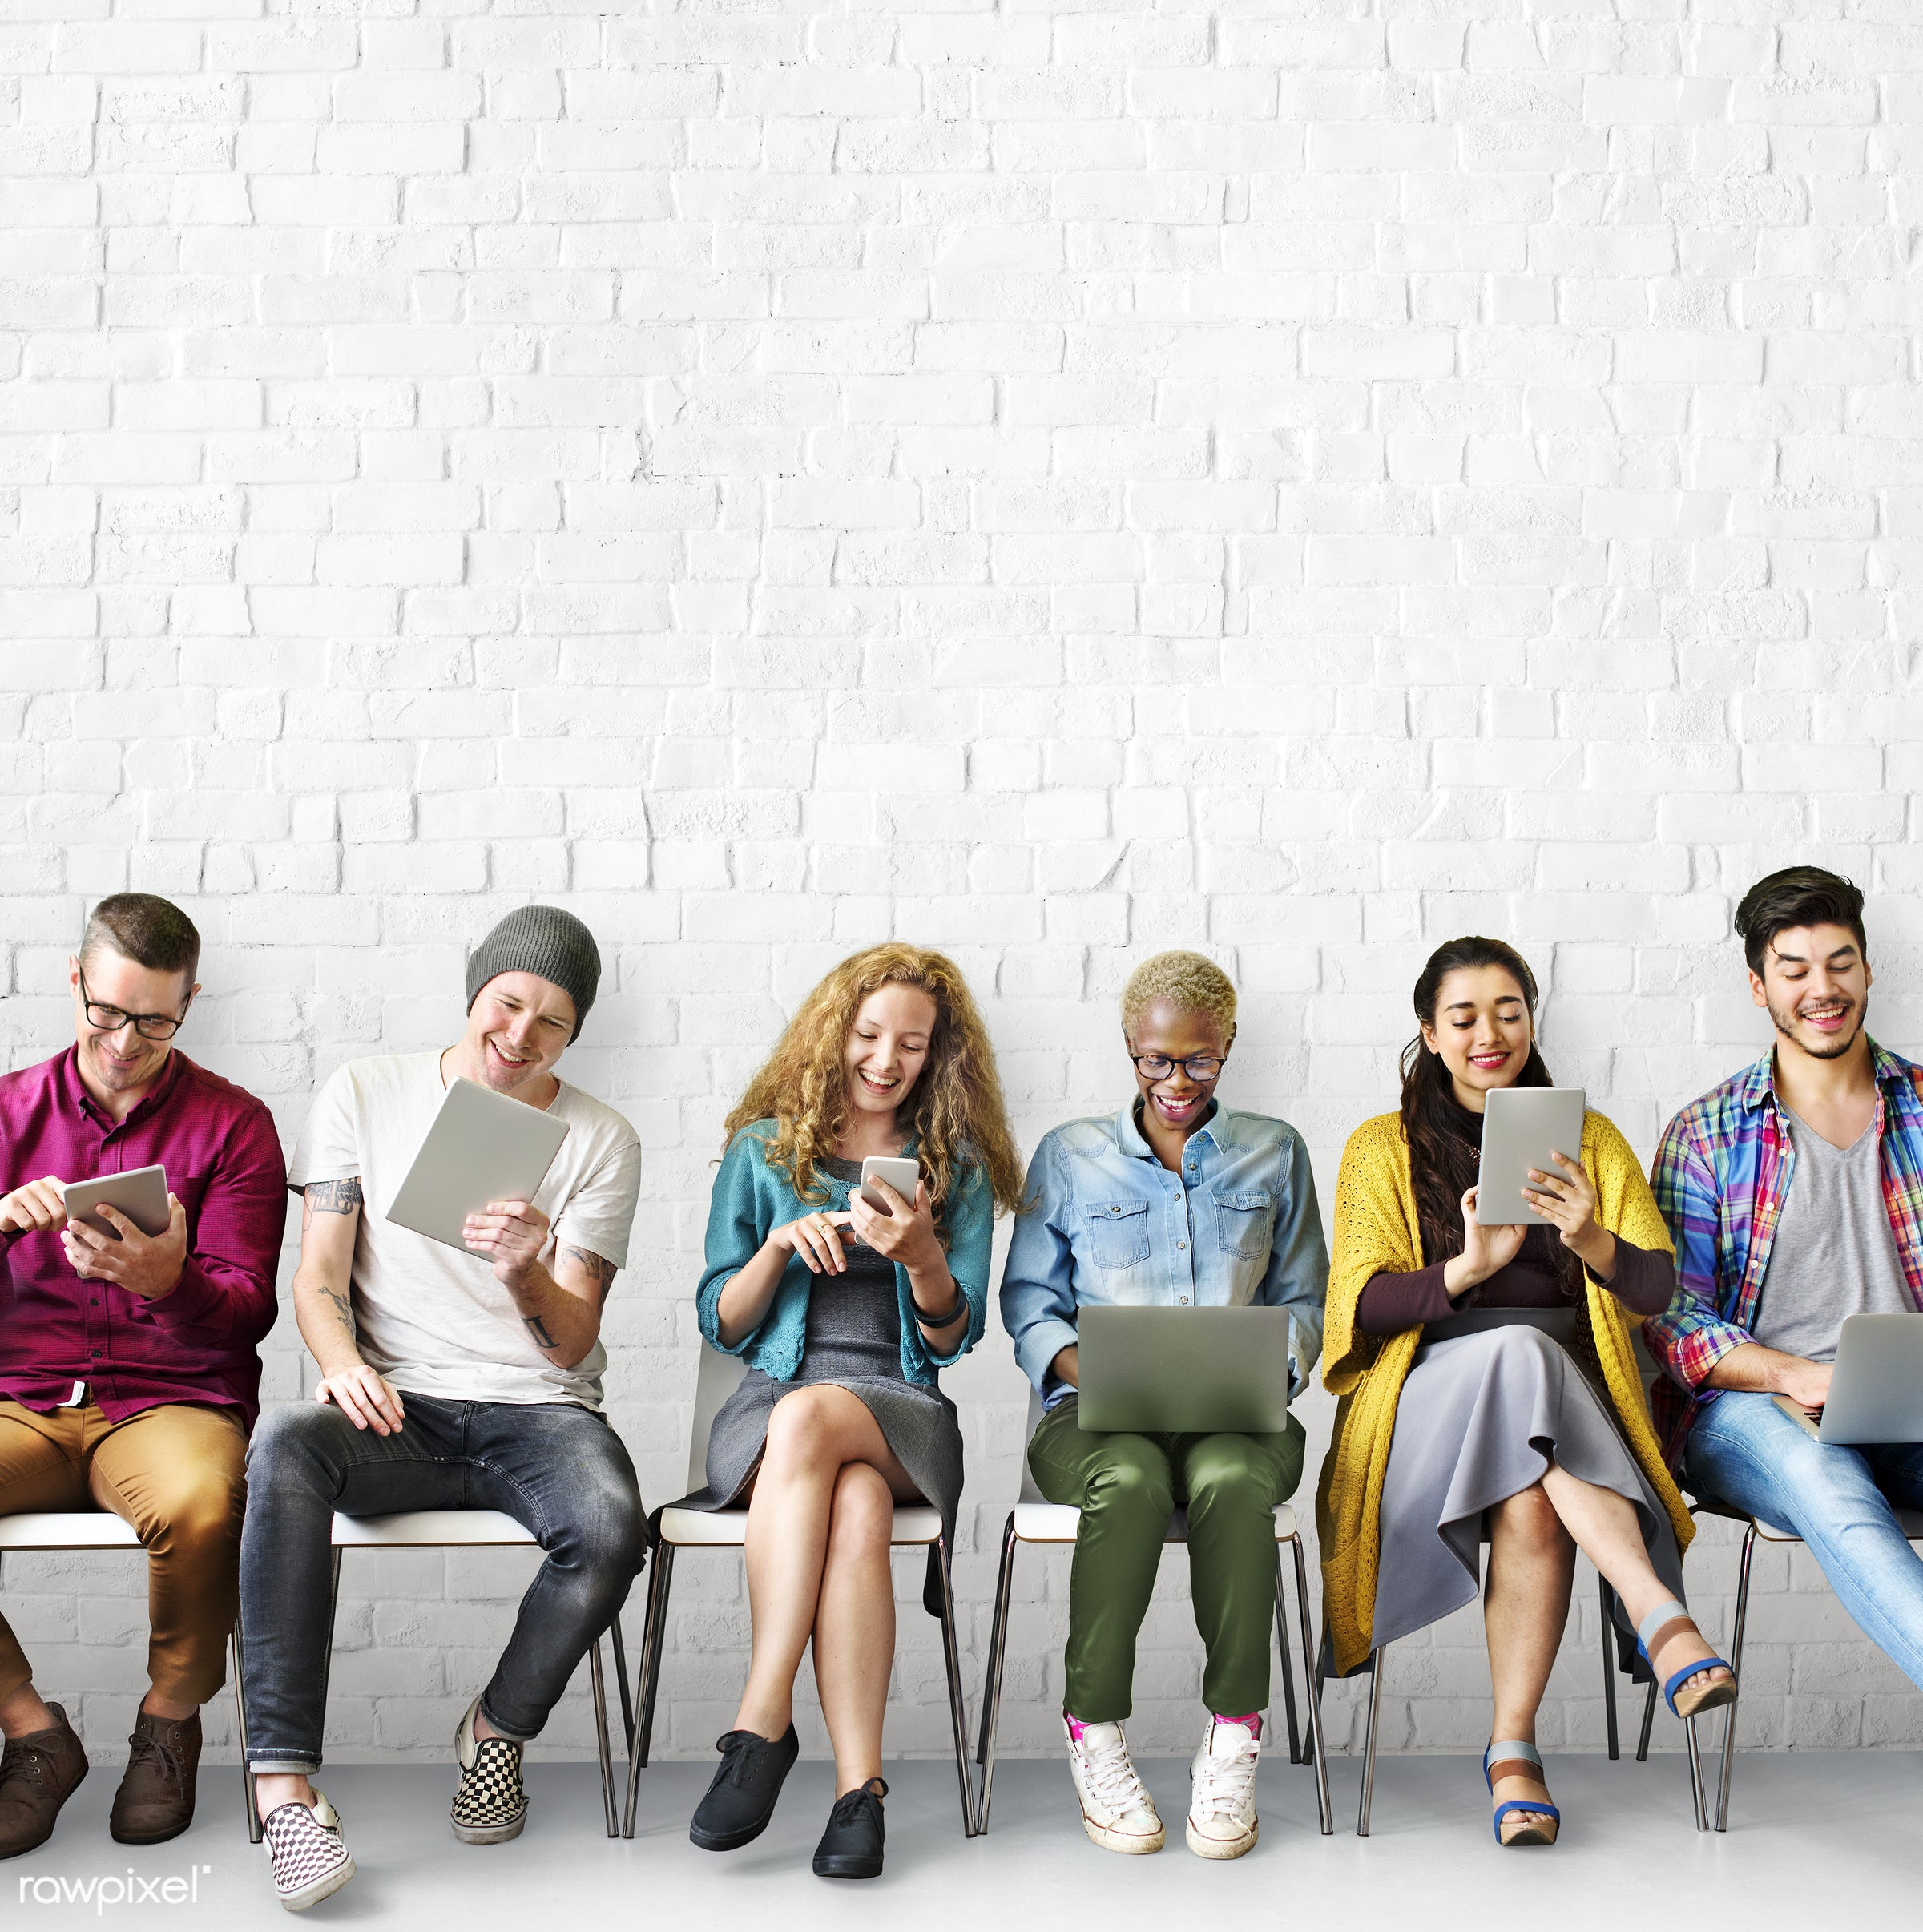 academic, adult, african descent, body, boys, brick wall, casual, chairs, closeness, colleagues, connecting, device, digital...